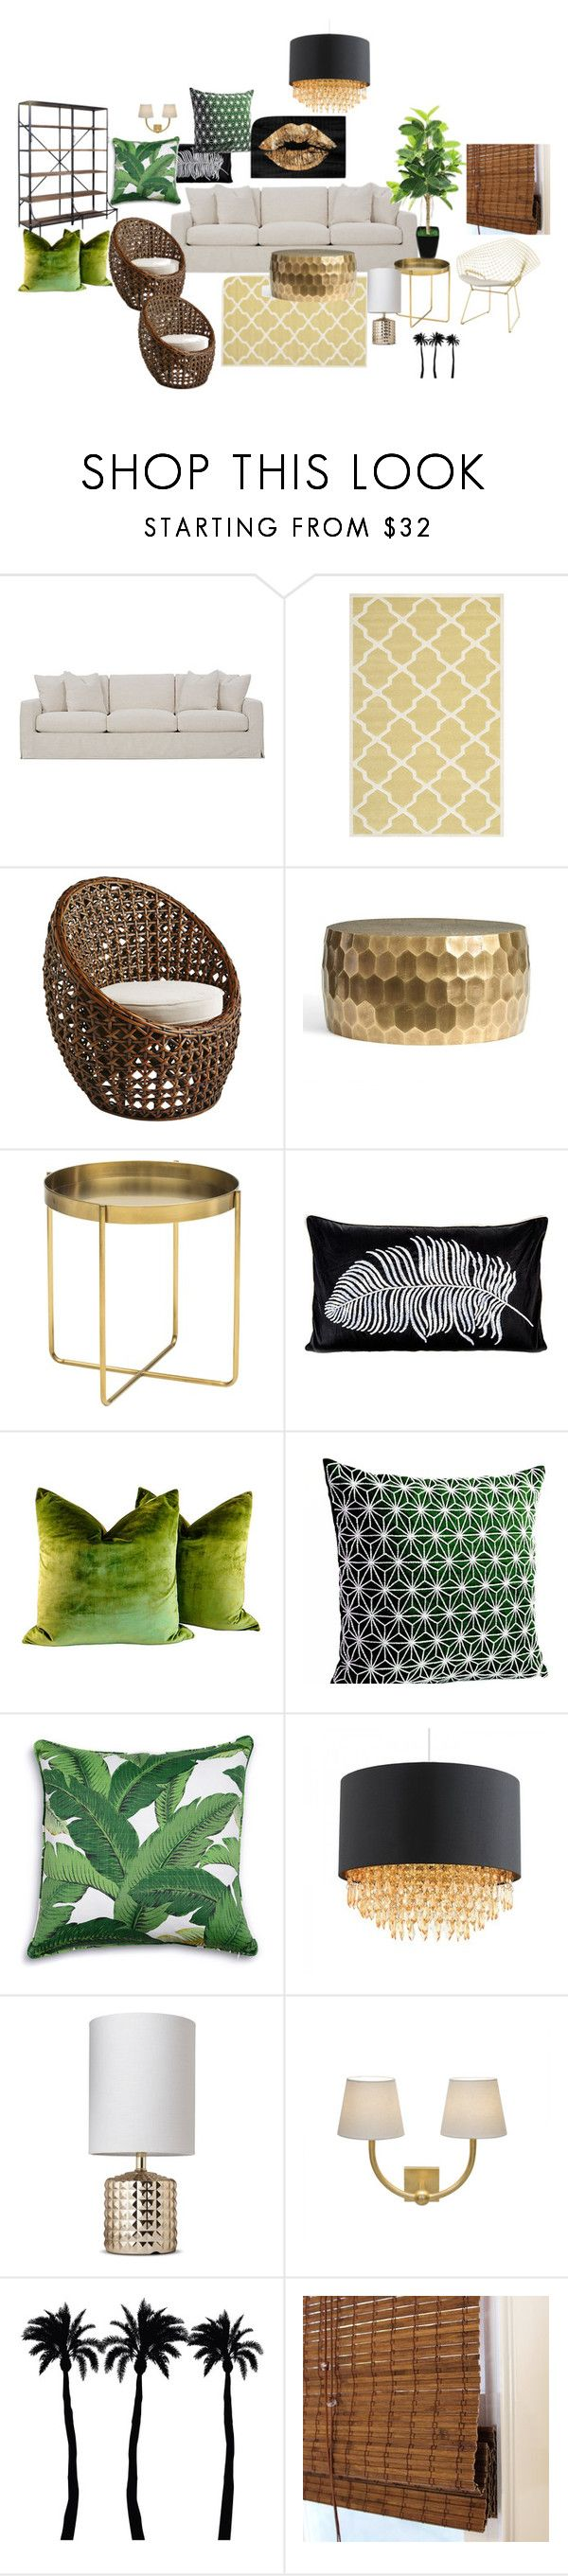 Tropical Glam By Kumi76 On Polyvore Featuring Interior Interiors Interior Design Tropical Outdoor Decortropical Home